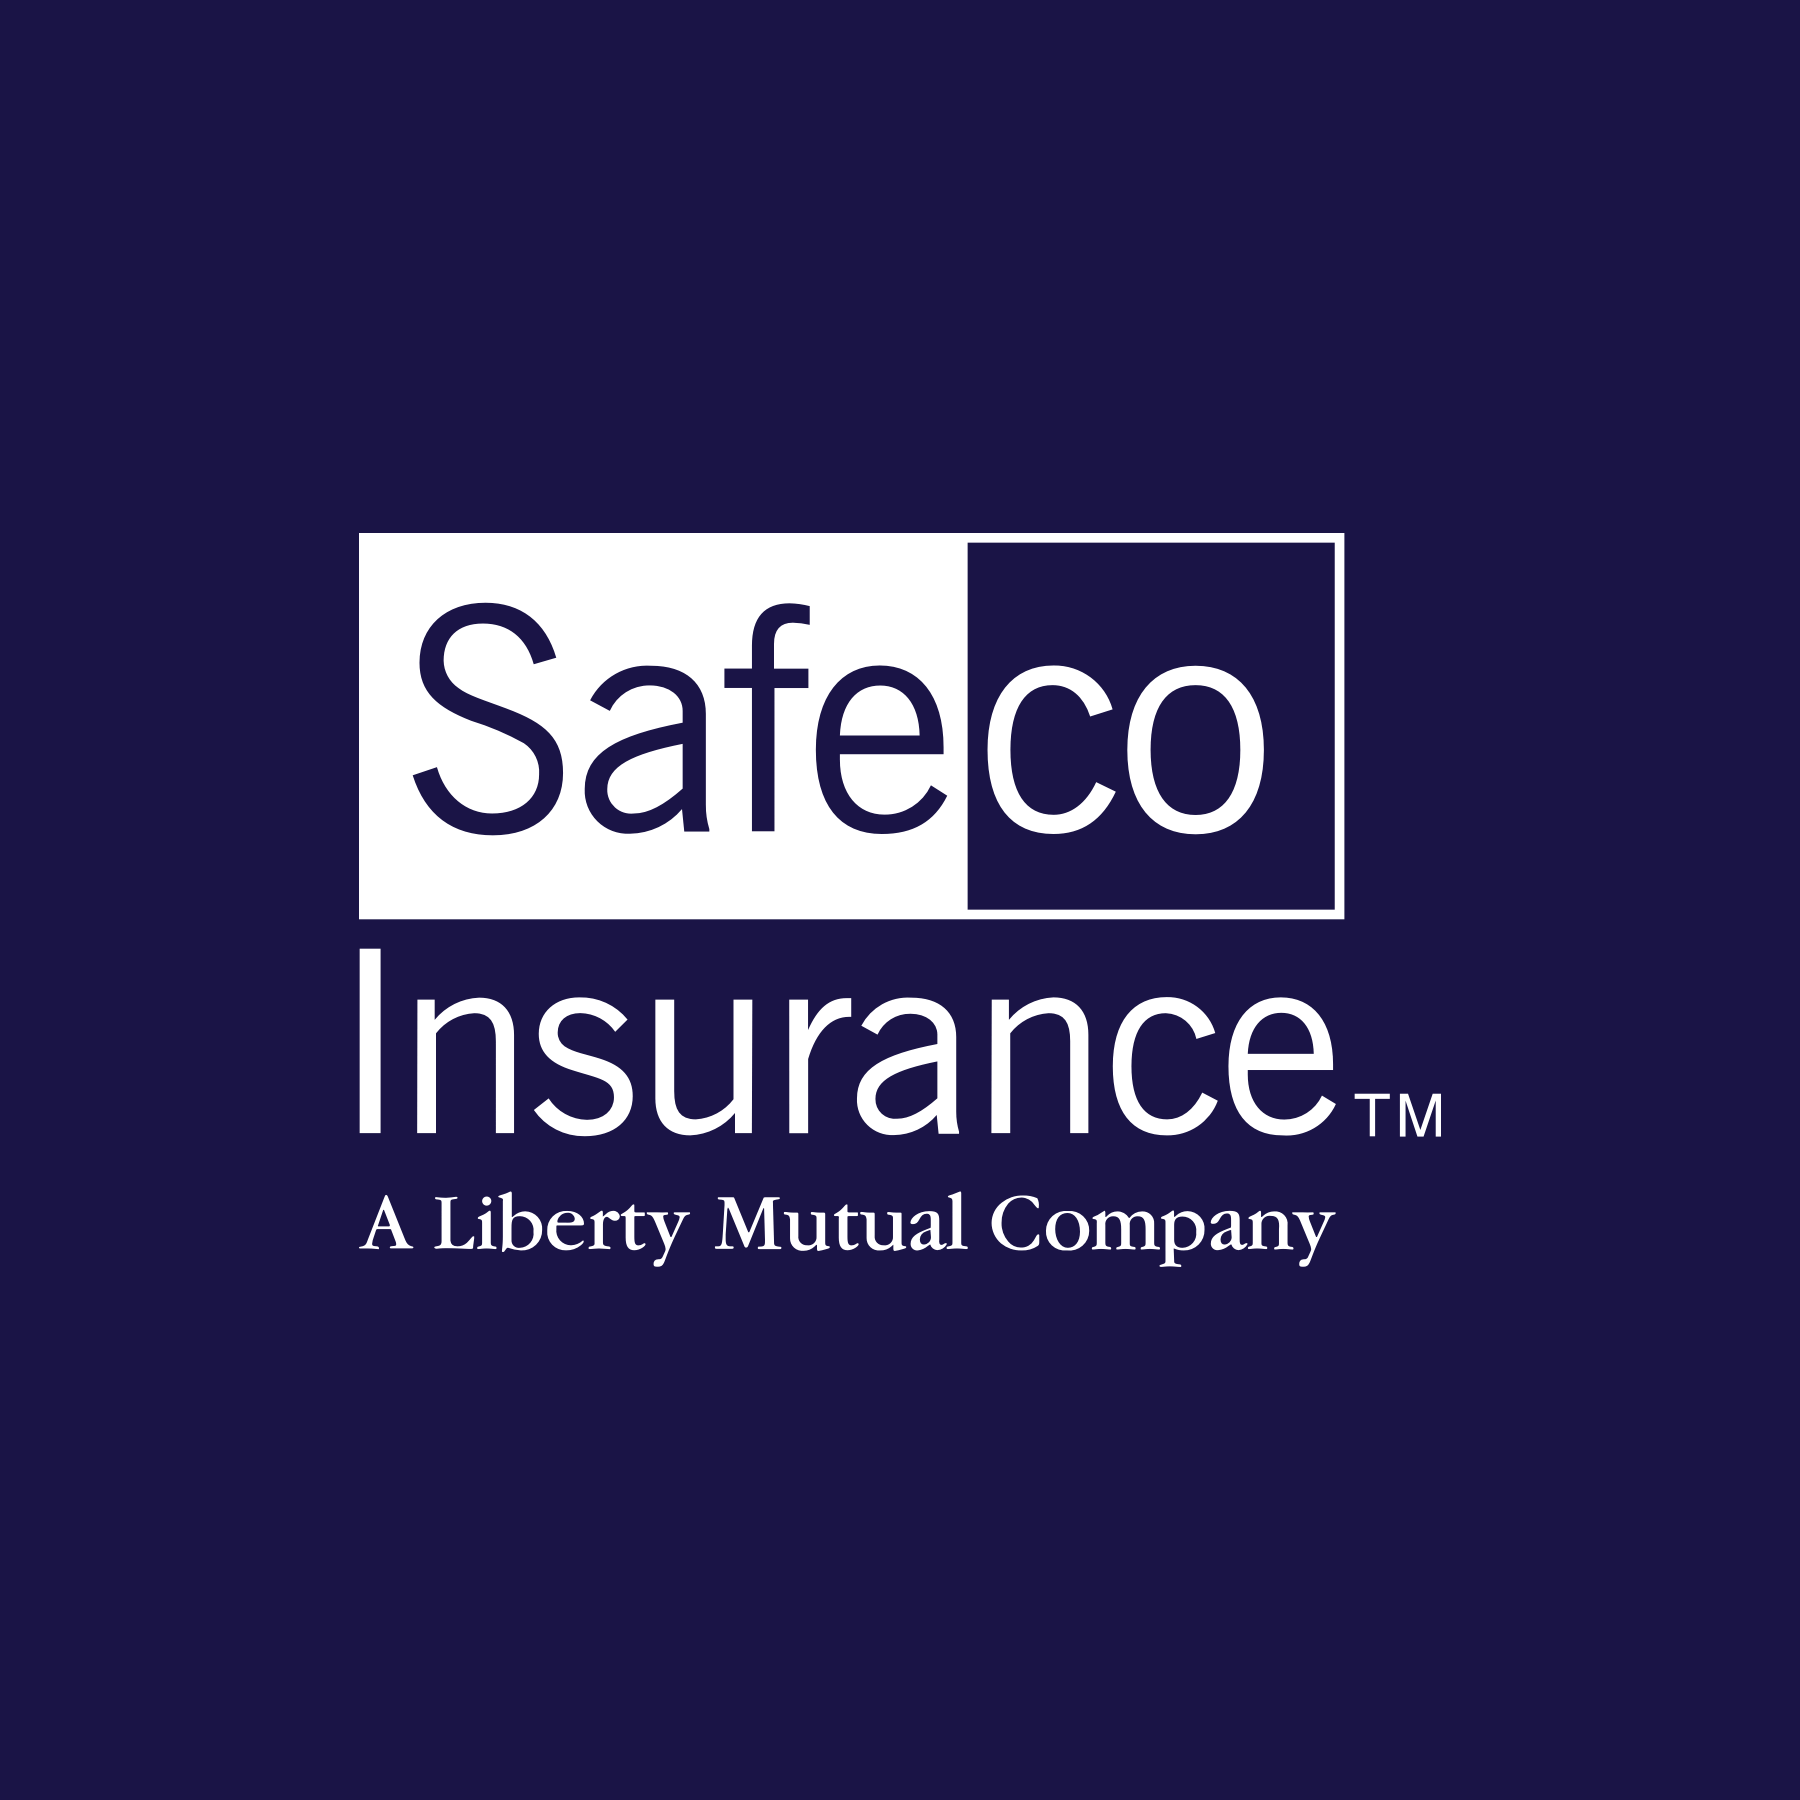 safeco insurance claims - HD1800×1800